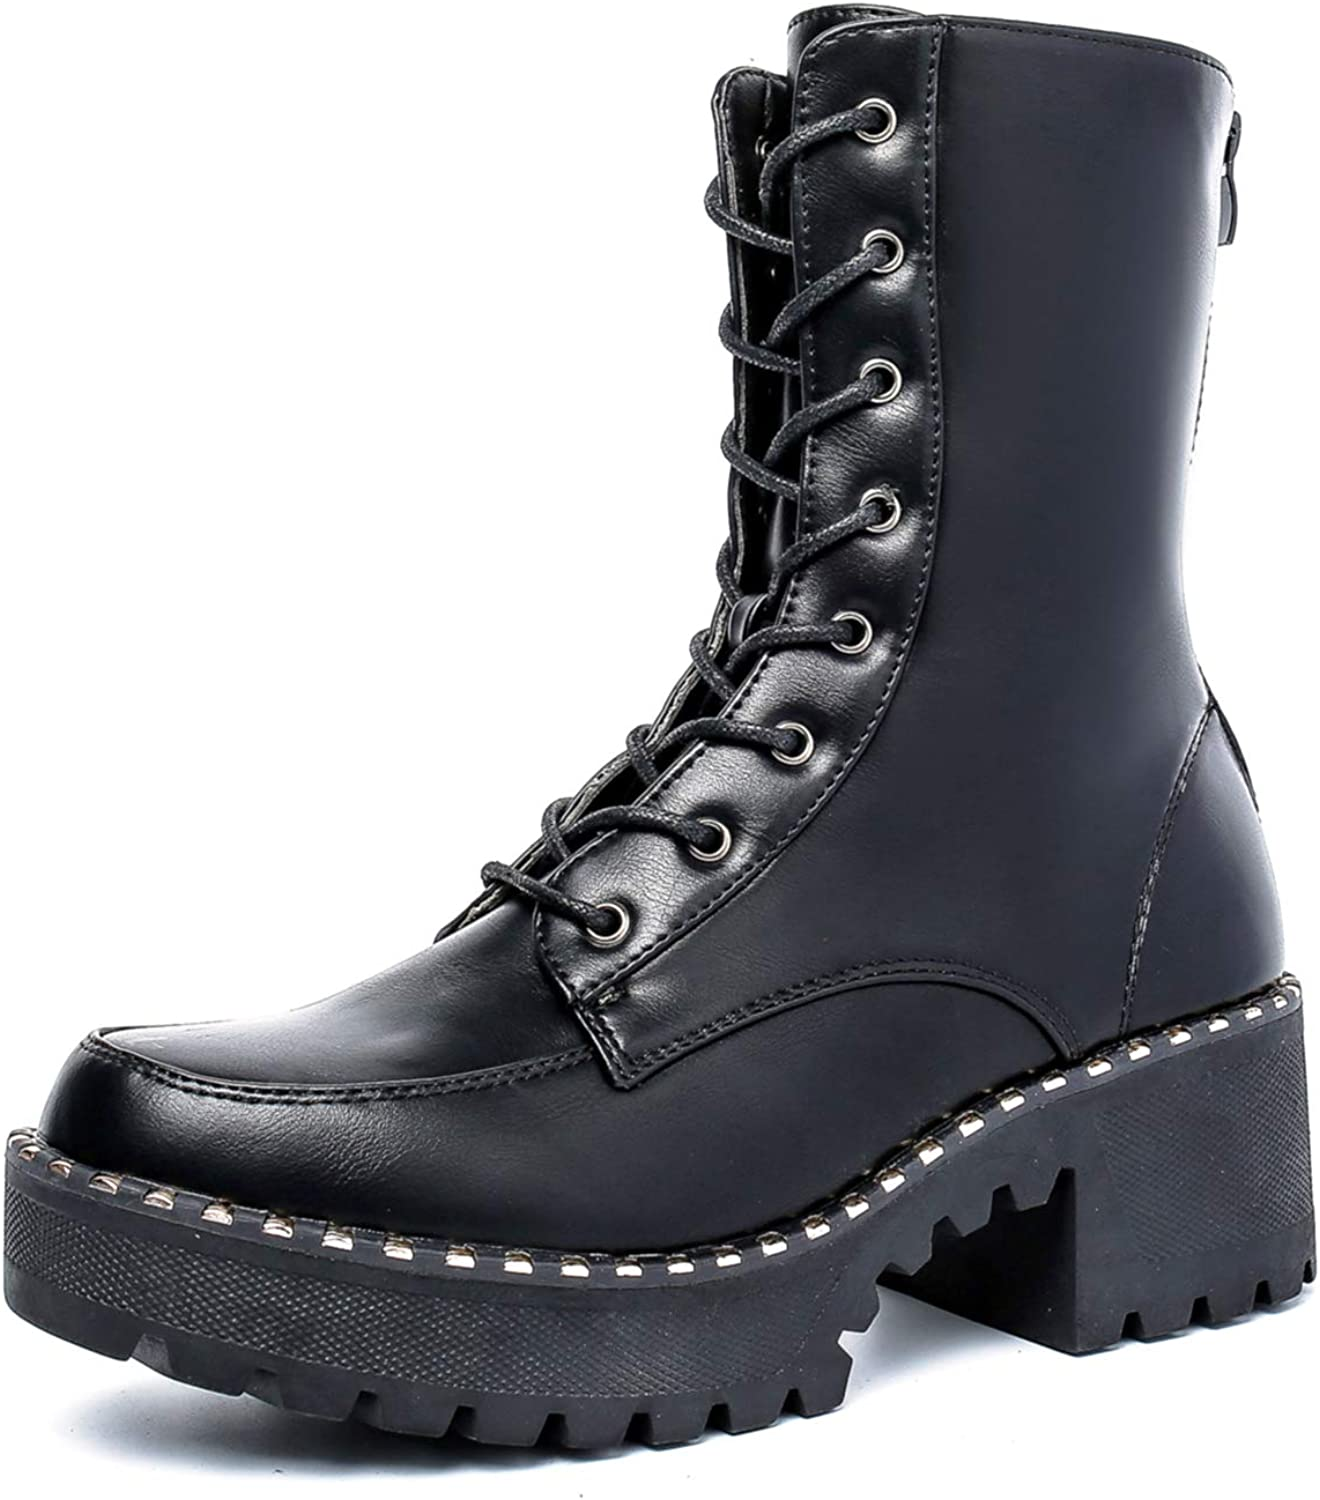 Fashion Goth Dottie Womens Platform Chunky Combat Boots Lace up with Zip Ankle Calf Knee High